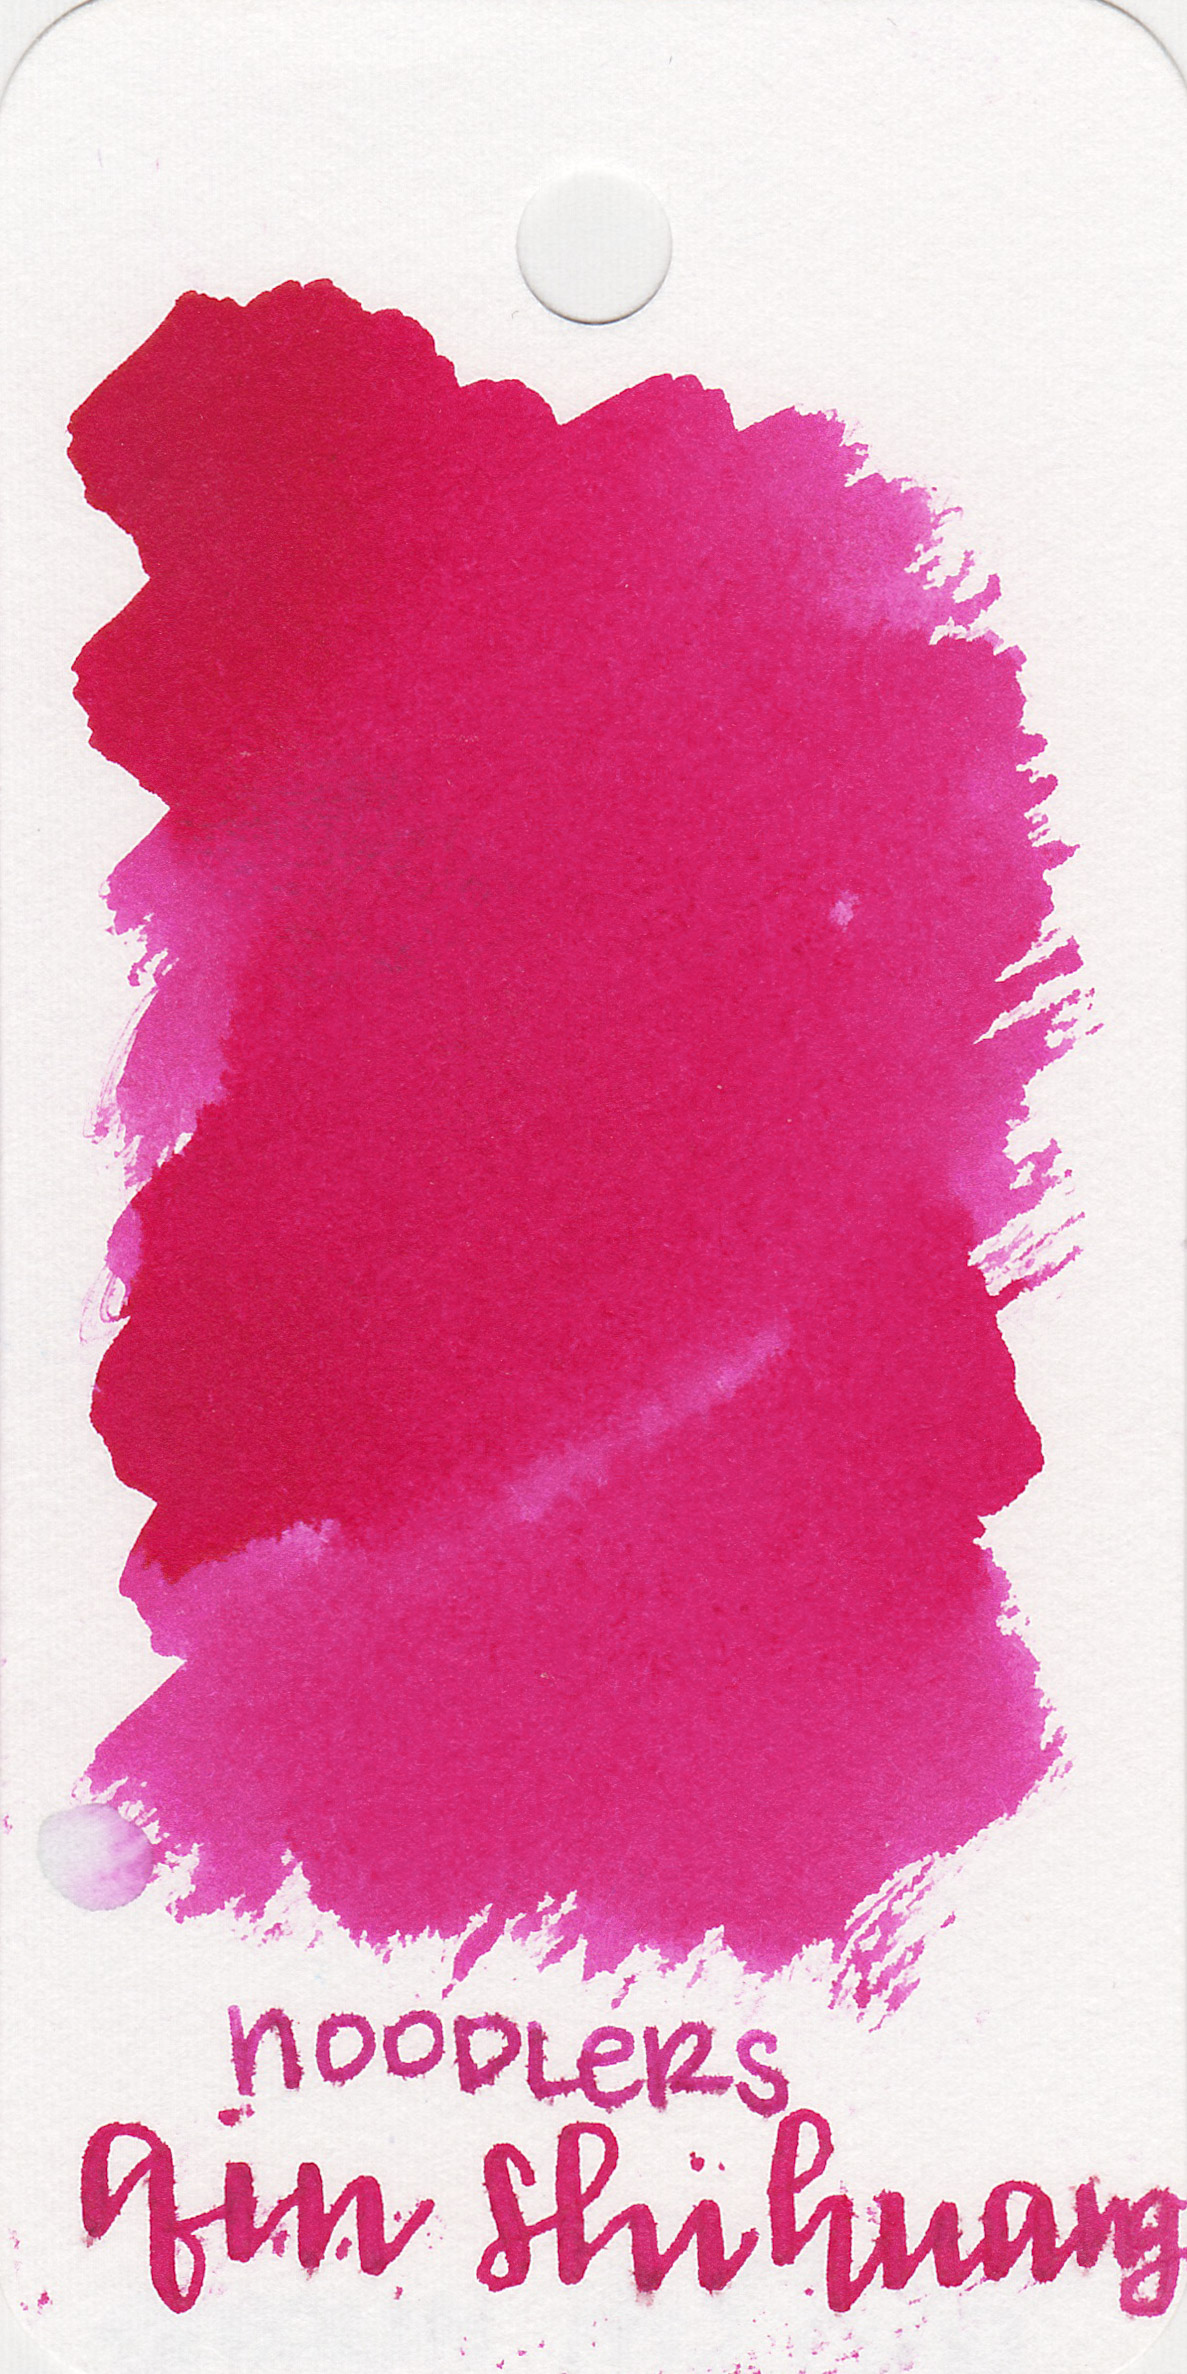 The color: - This ink is supposed to be a terra-cotta red, but I found it to be more of a bright pink.